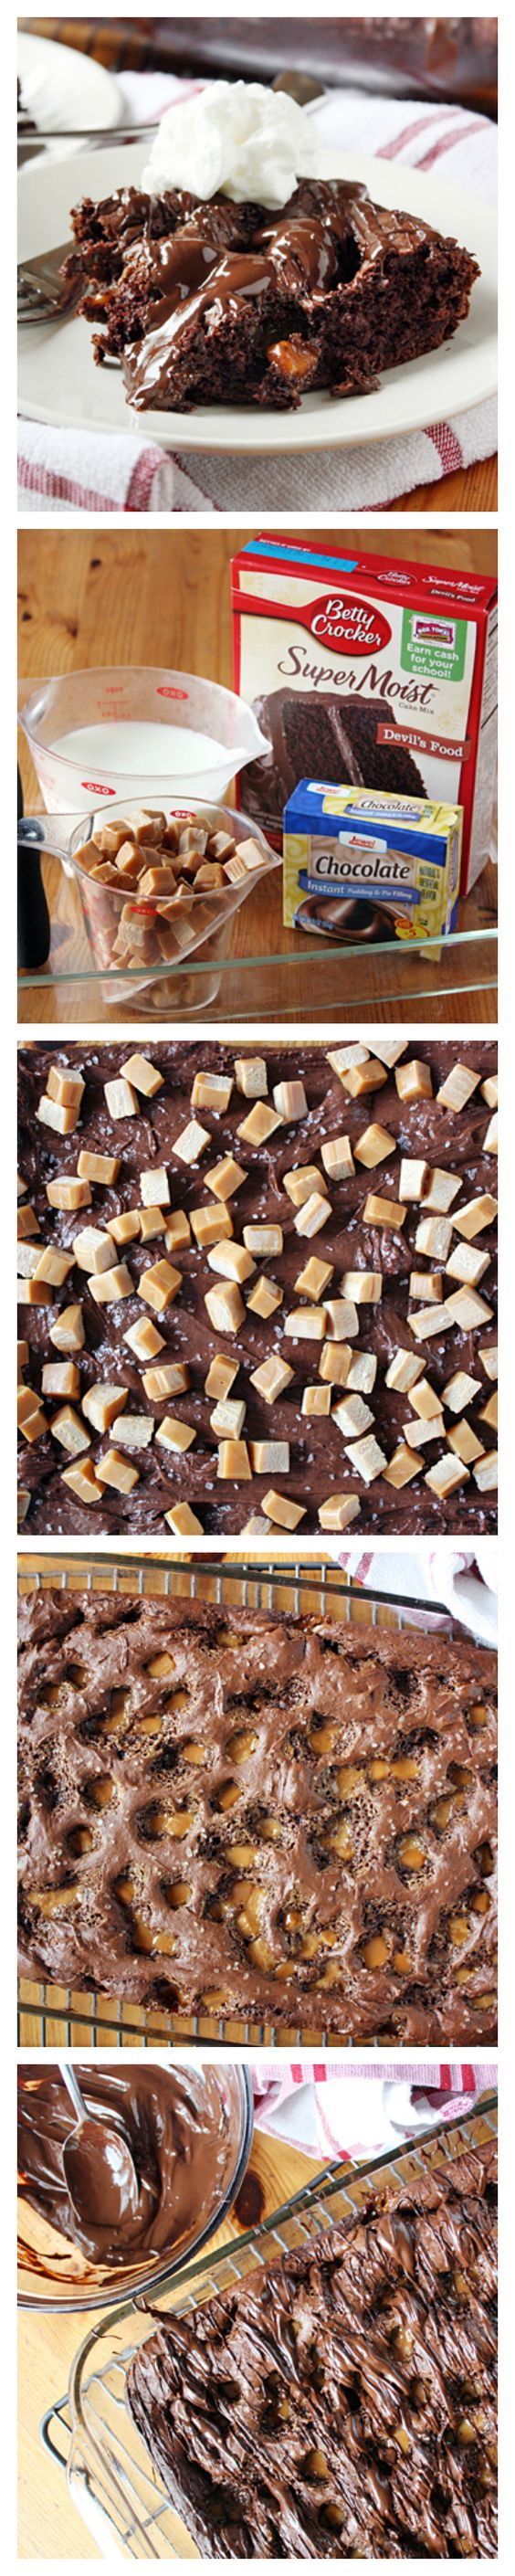 """Salted Caramel- Chocolate Dump Cake. The answer is always """"yes"""" to caramel and chocolate. This cake is beyond easy. Throw all the ingredients into a 13x9, and voila! You've got a dessert that will make you melt. This recipe is a perfect dessert idea for a quick weeknight indulgence."""